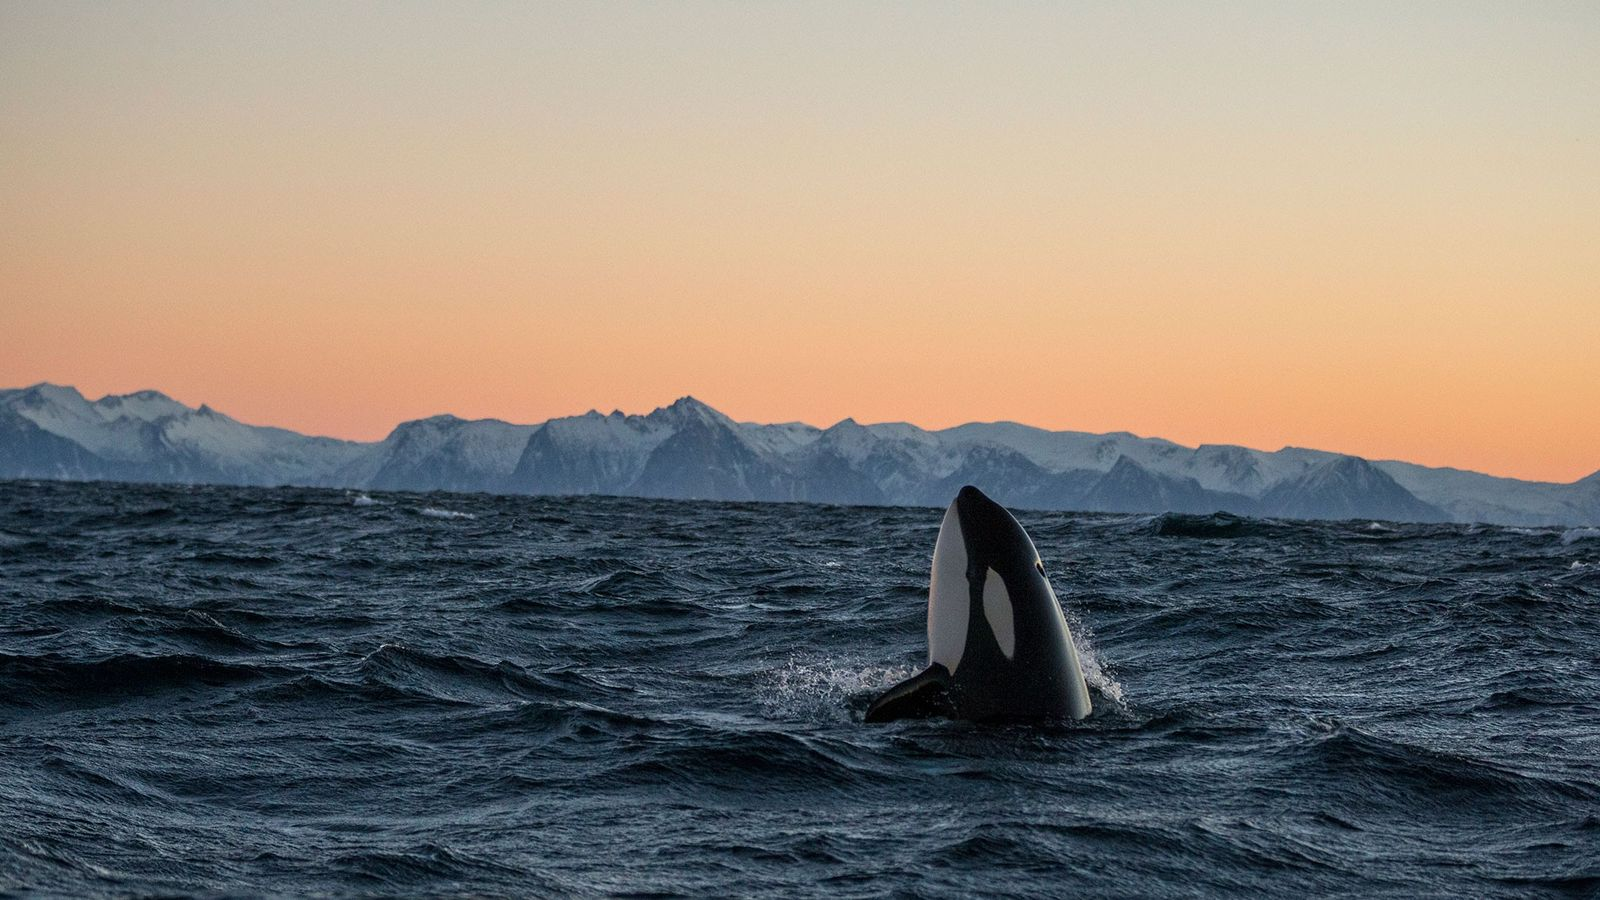 An orca lifts its head from the surface of the water in the Andfjorden in Norway.